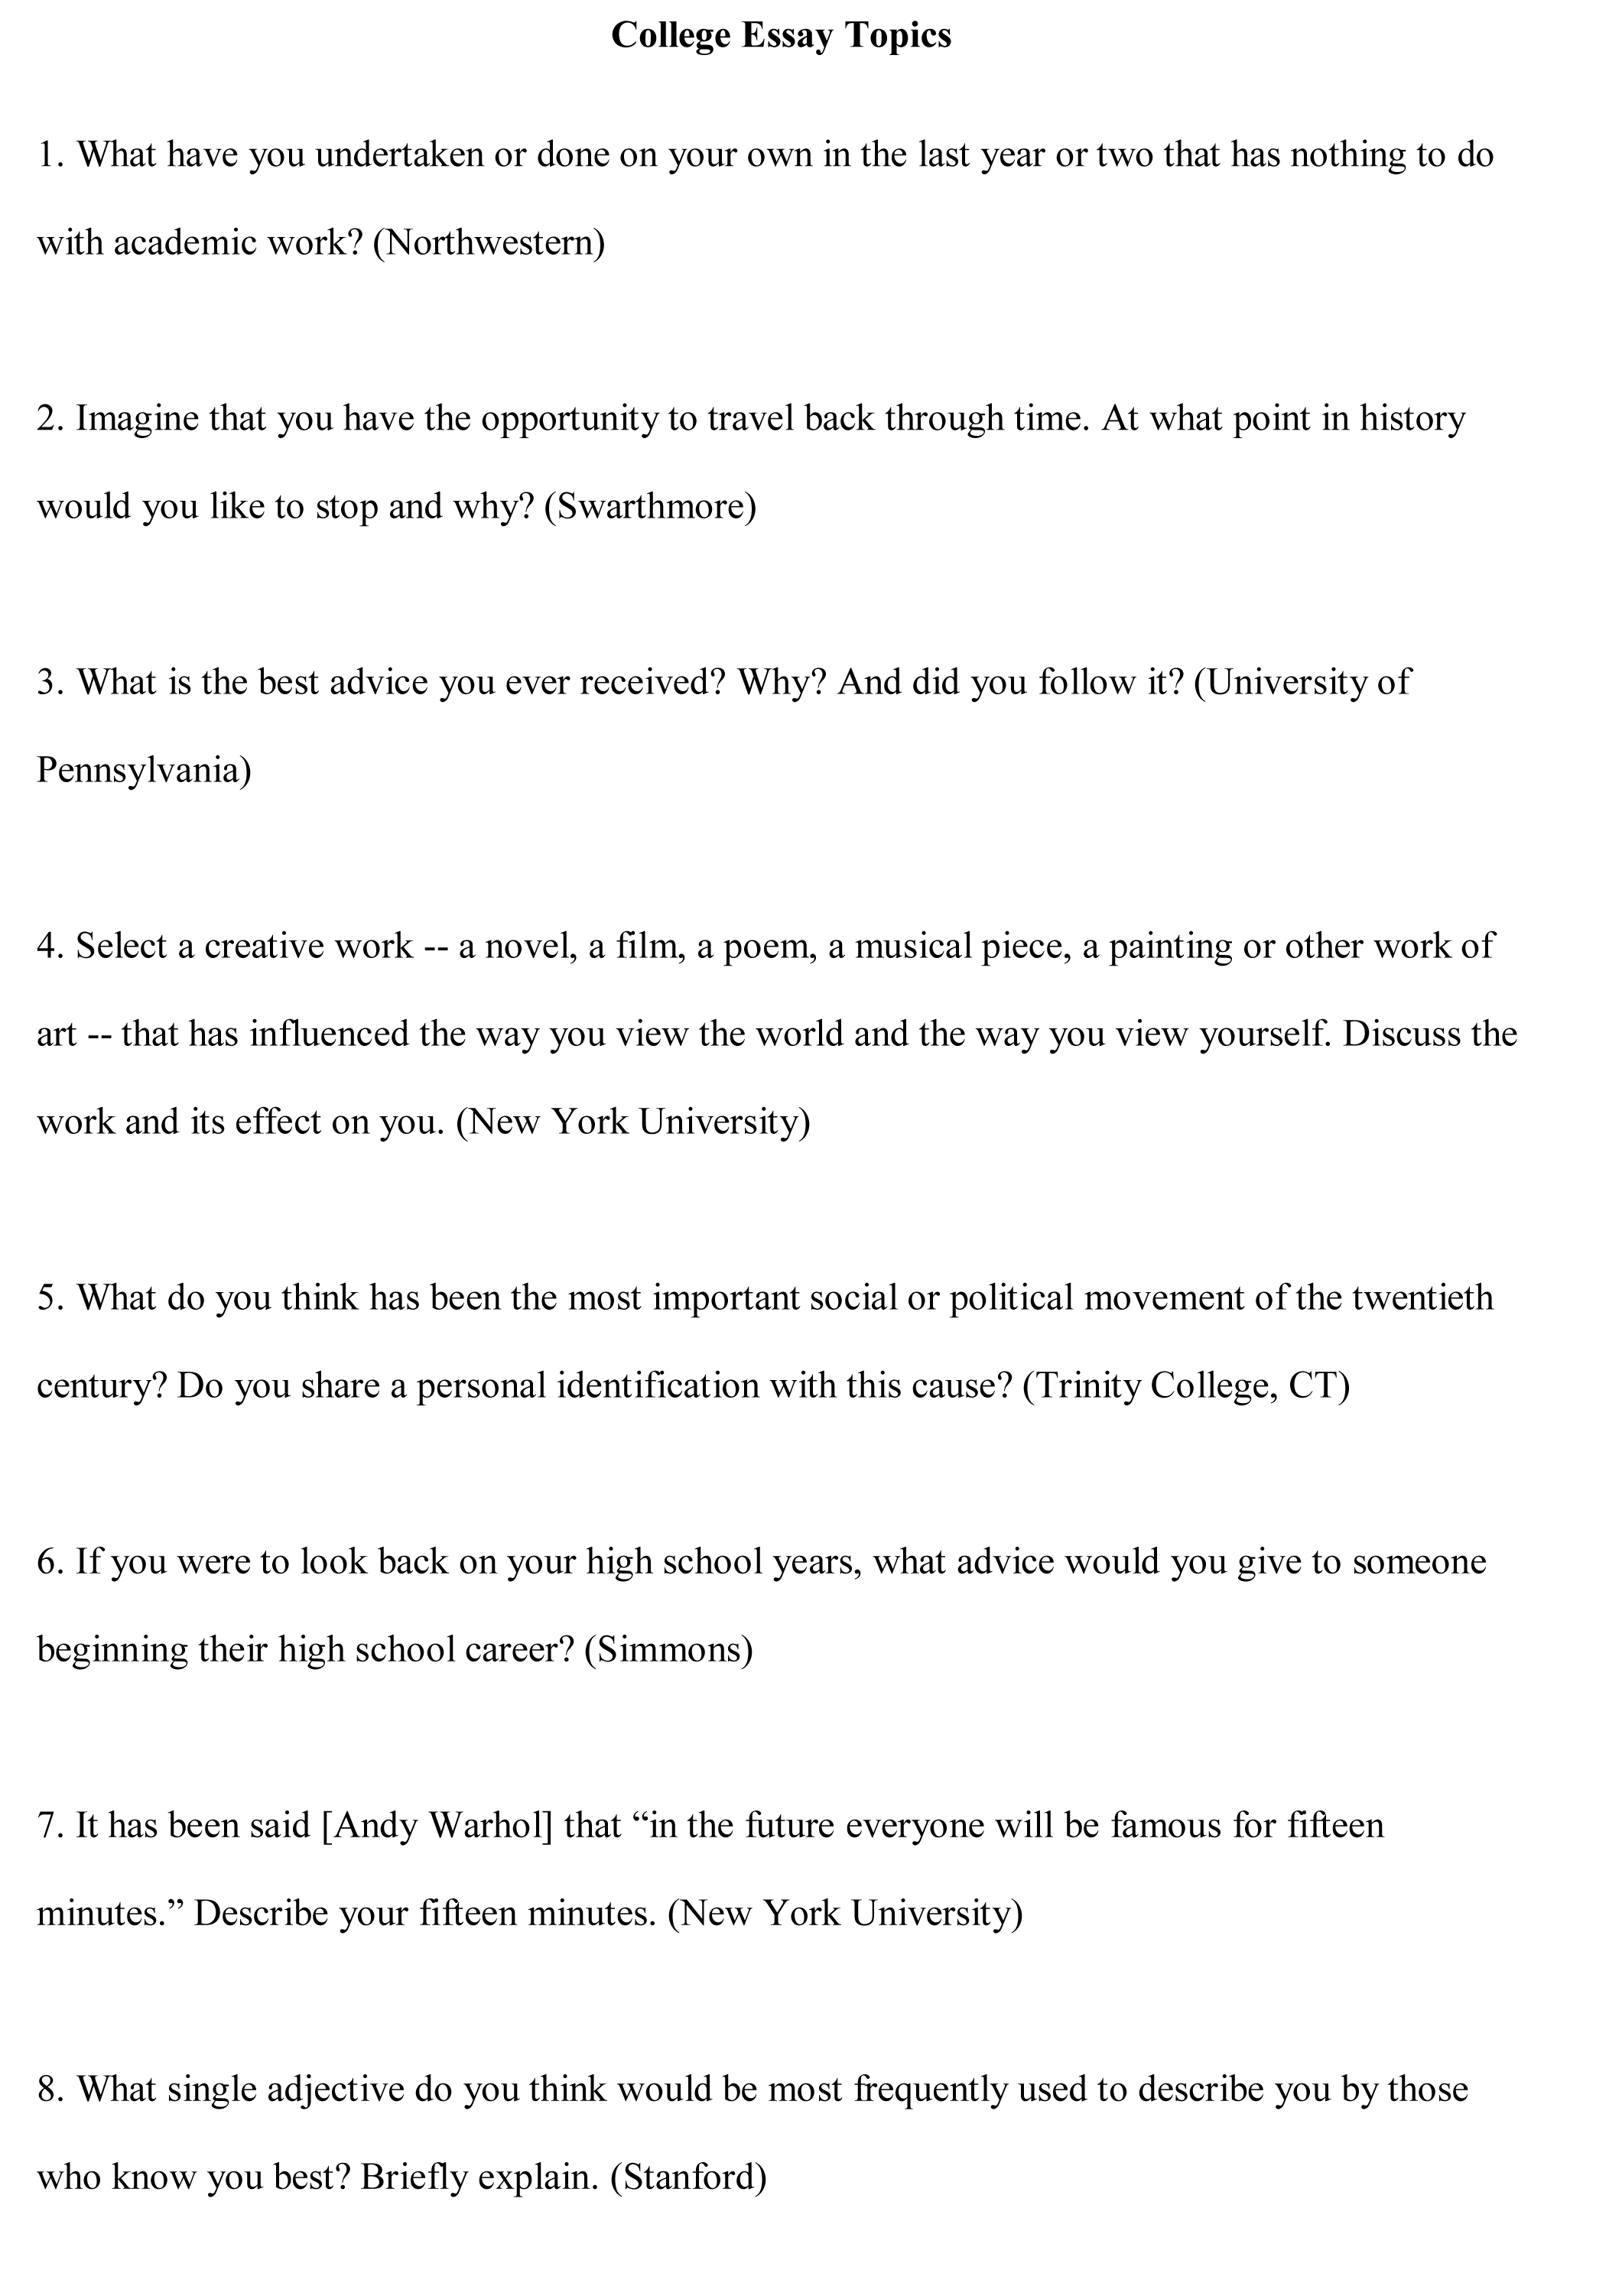 002 College Essay Topics Free Sample1 Example Incredible 1984 Stasiland George Orwell Research Paper Book Questions Full